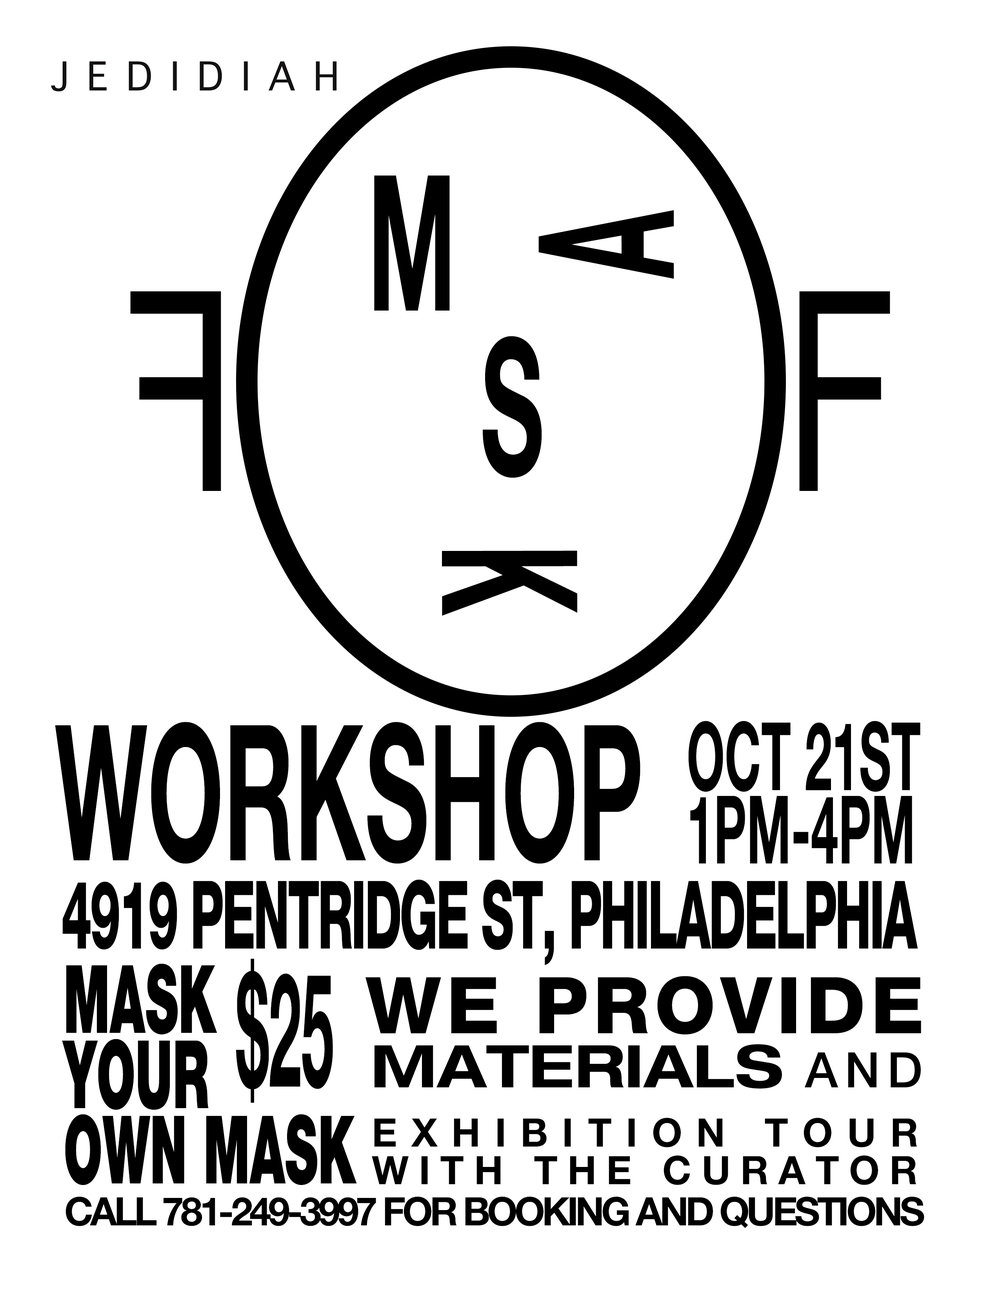 Mask-Off Workshop